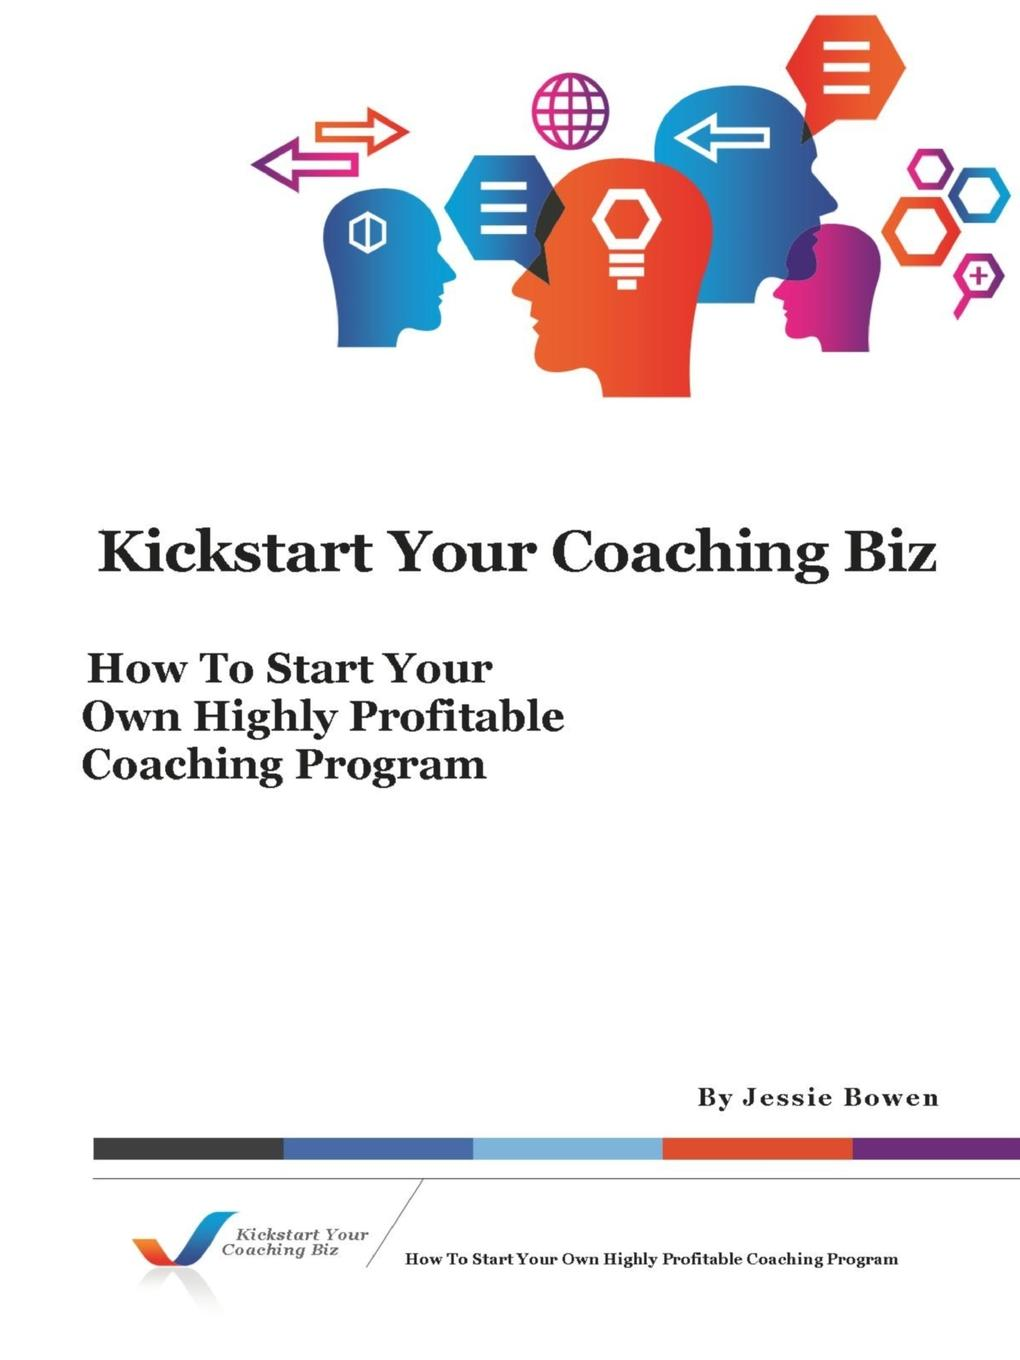 Kickstart Your Coaching Biz Kickstart Your Coaching BiZ, dedicated walking through...